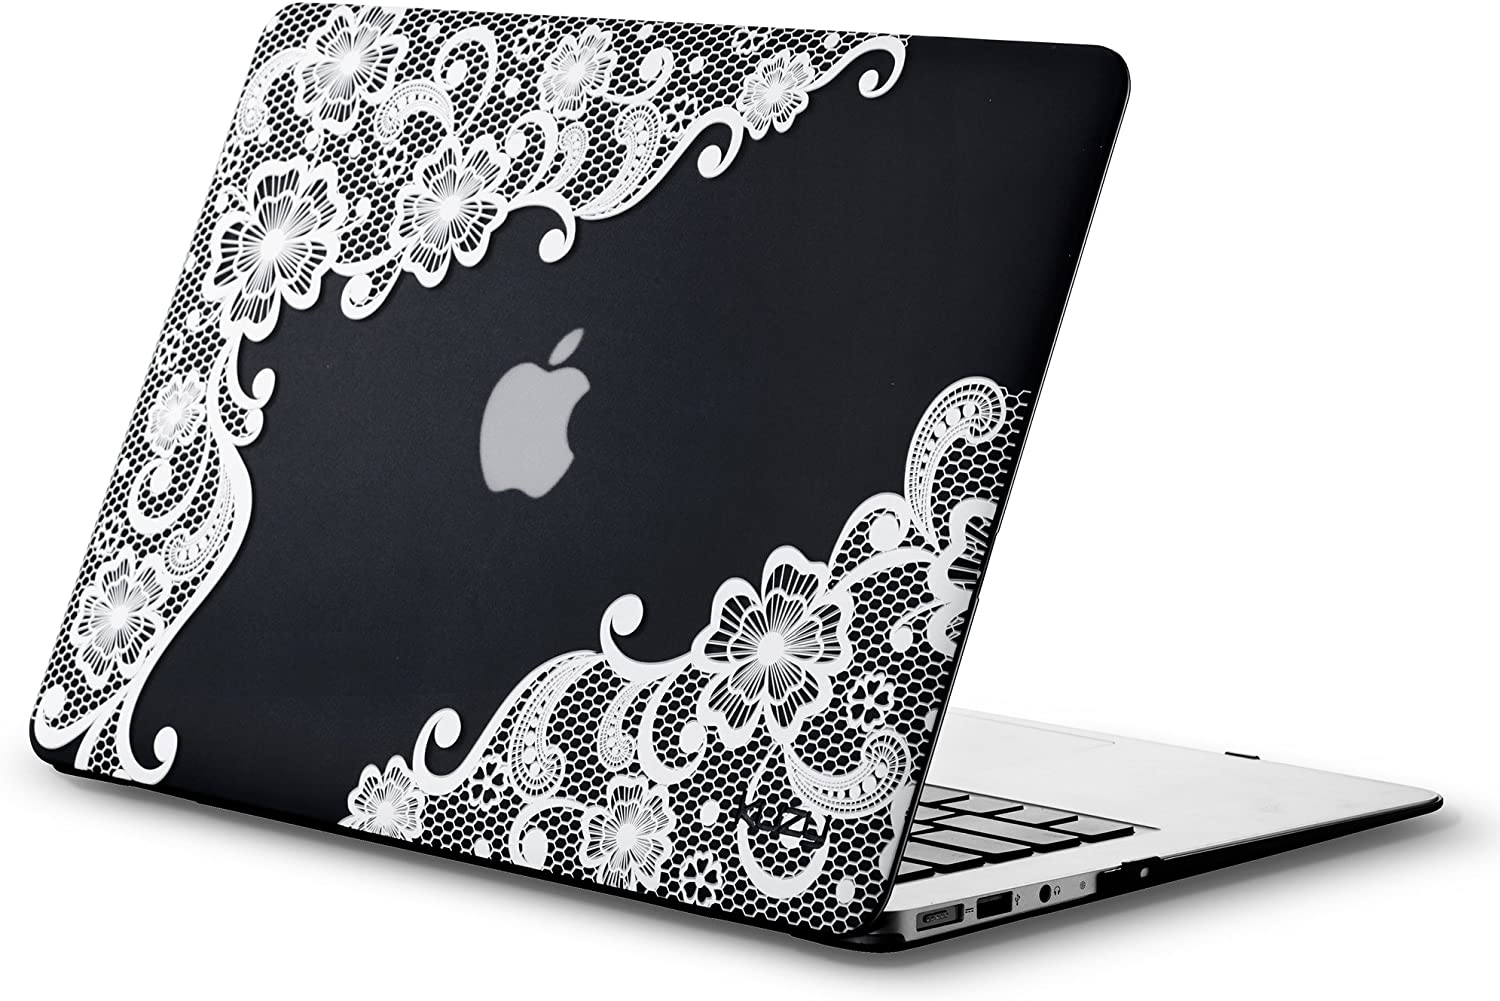 Kuzy MacBook Air 13 inch Case A1466 A1369 Soft Touch Cover for Older Version 2017, 2016, 2015 Hard Shell - Lace Black